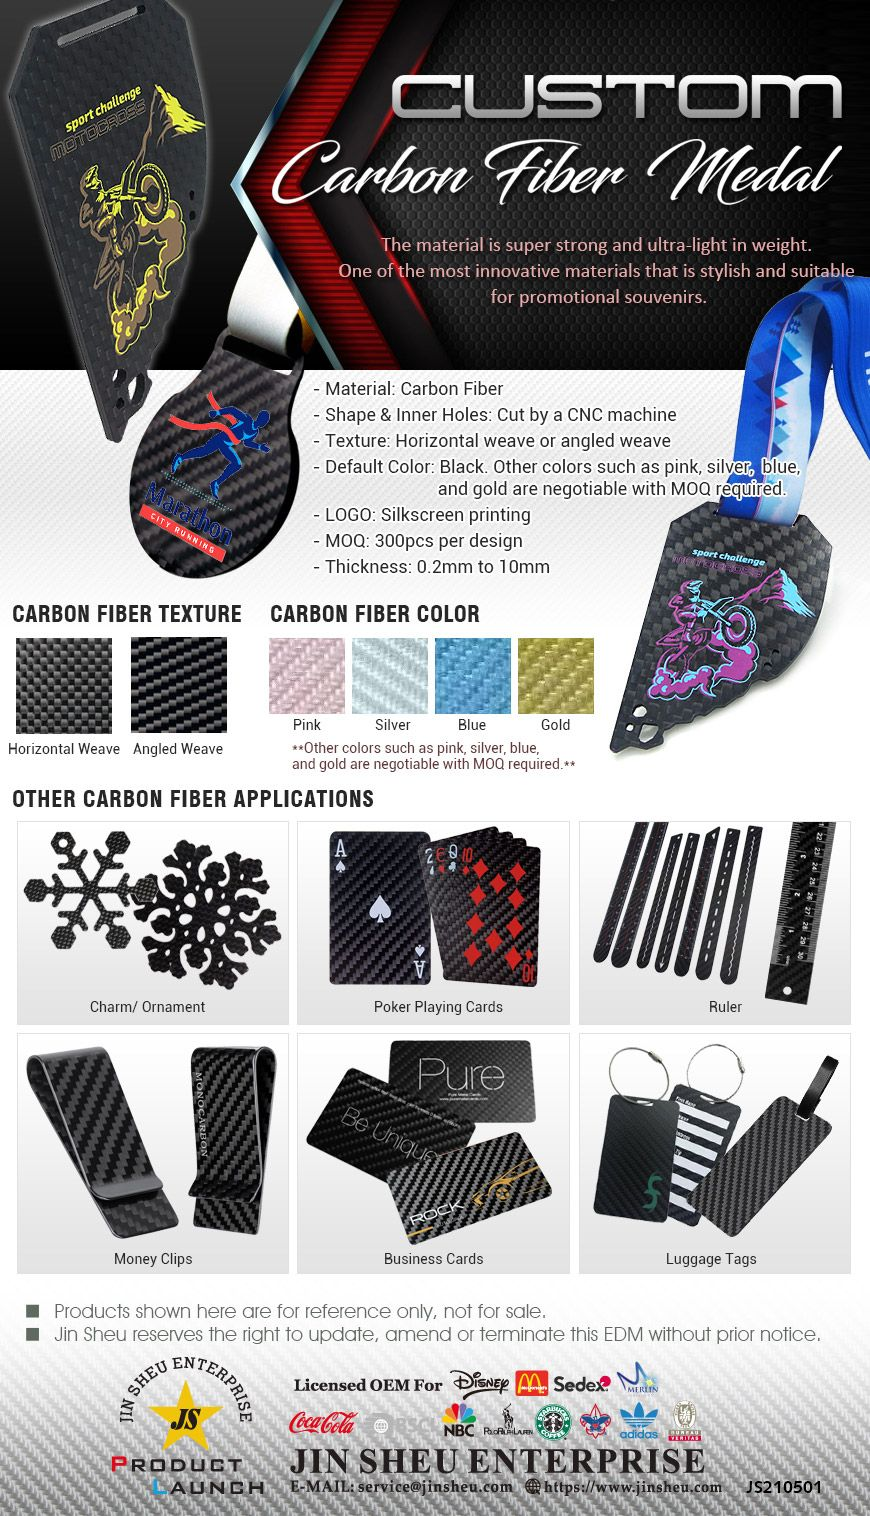 Carbon Fiber that is Professional, Stylish and Sophisticated